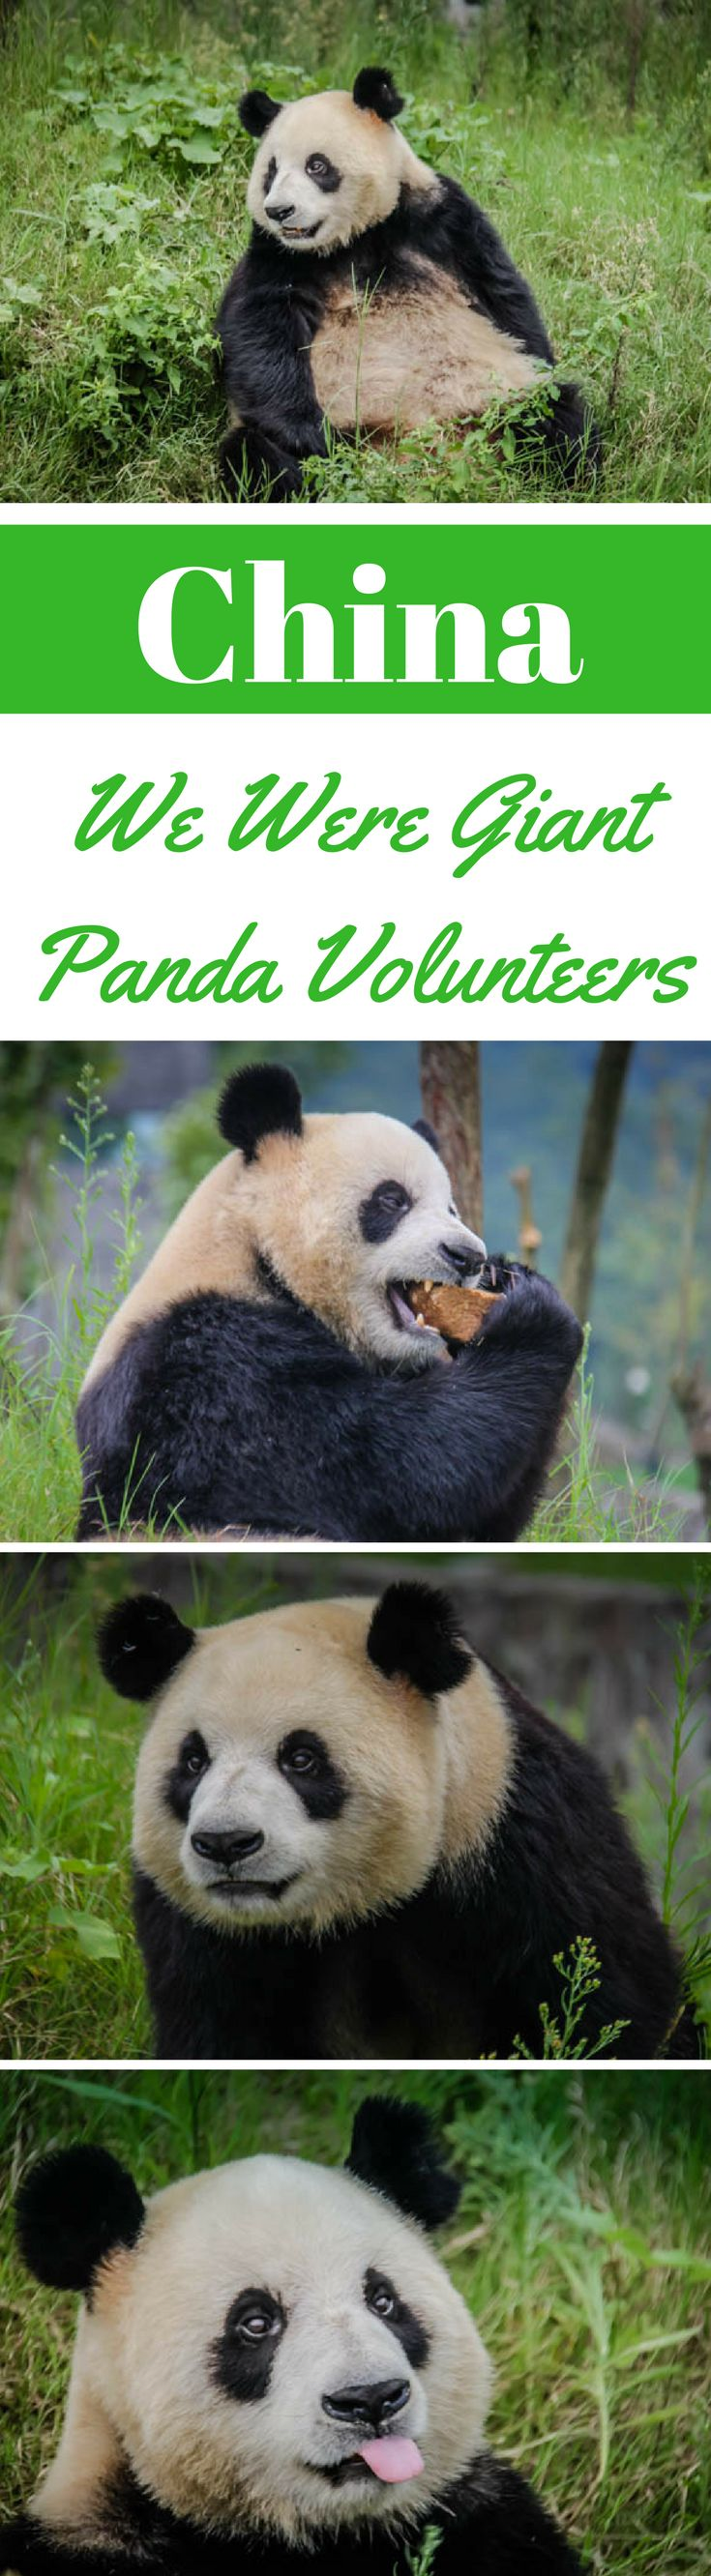 We Were Giant Panda Volunteers in China.  A visit to China would be incomplete without taking a chance to get up close and personal with China's Giant Panda. Since zoo's really are not our thing and we prefer seeing animals in a more natural environment, we decided to see China's famous icon at one the 3 Panda Research Centers that reside near Chengdu in Western China. Click to read more. #China #Travel #Panda